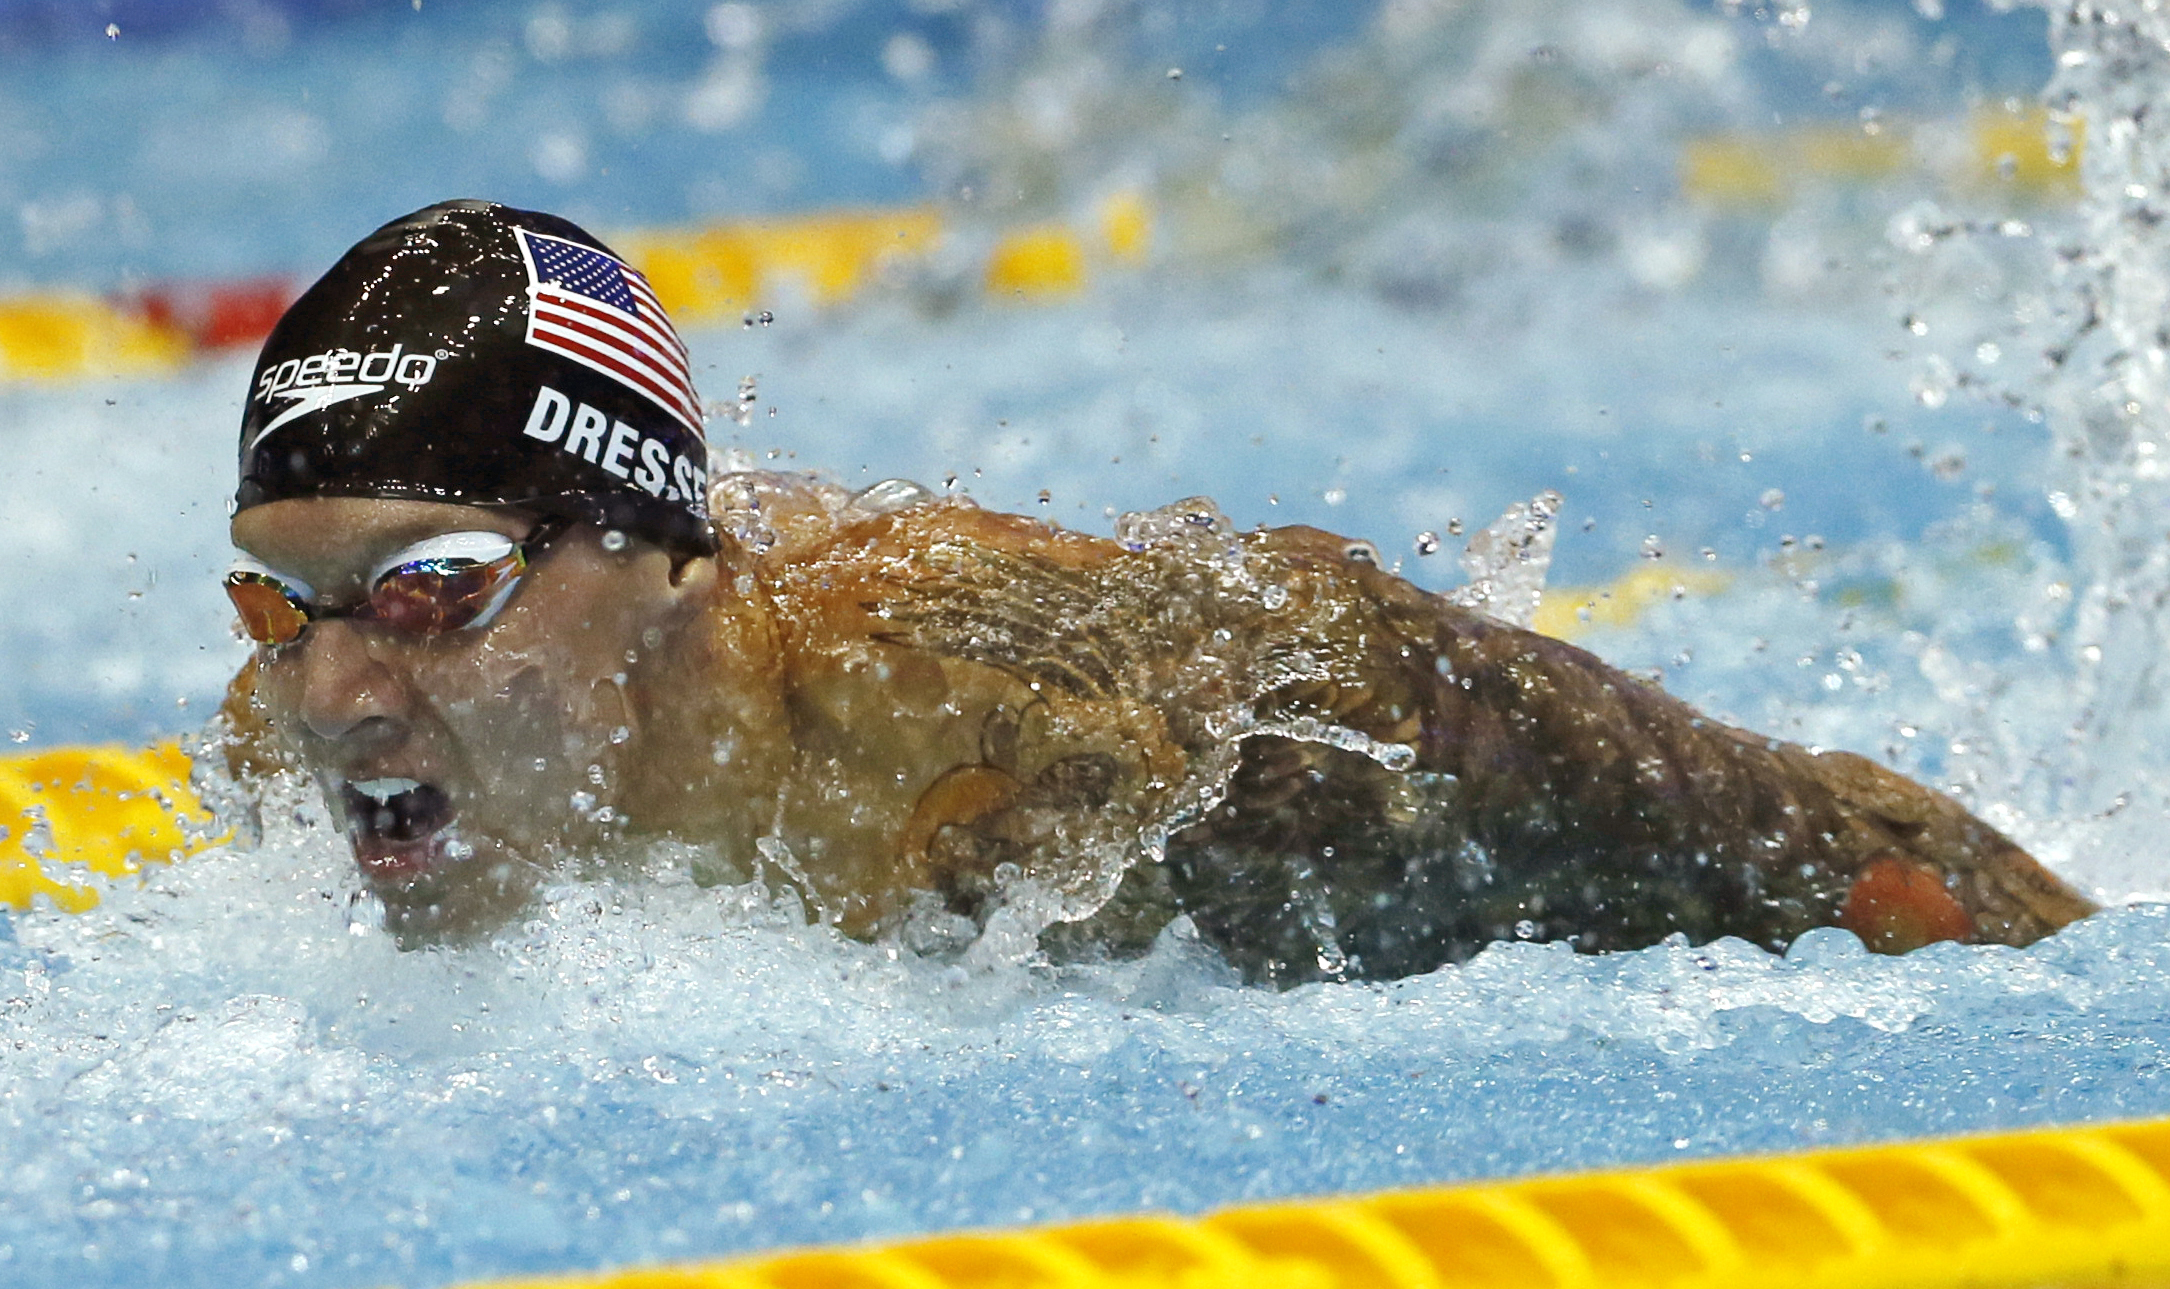 AP Interview: Dressel a reluctant superstar heading to 2020